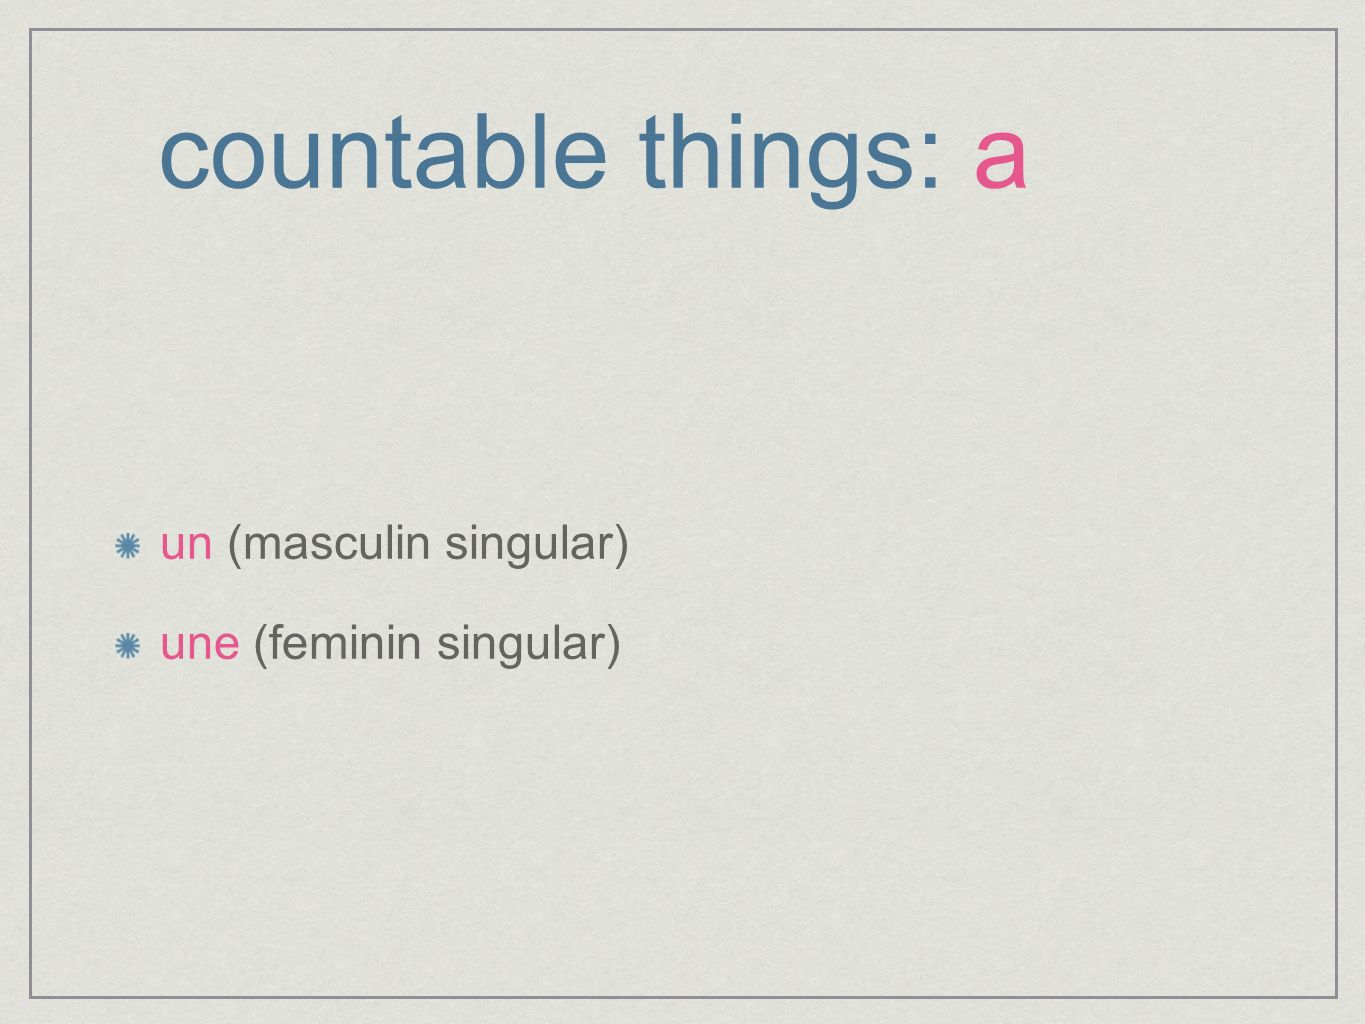 countable things: a un (masculin singular) une (feminin singular)